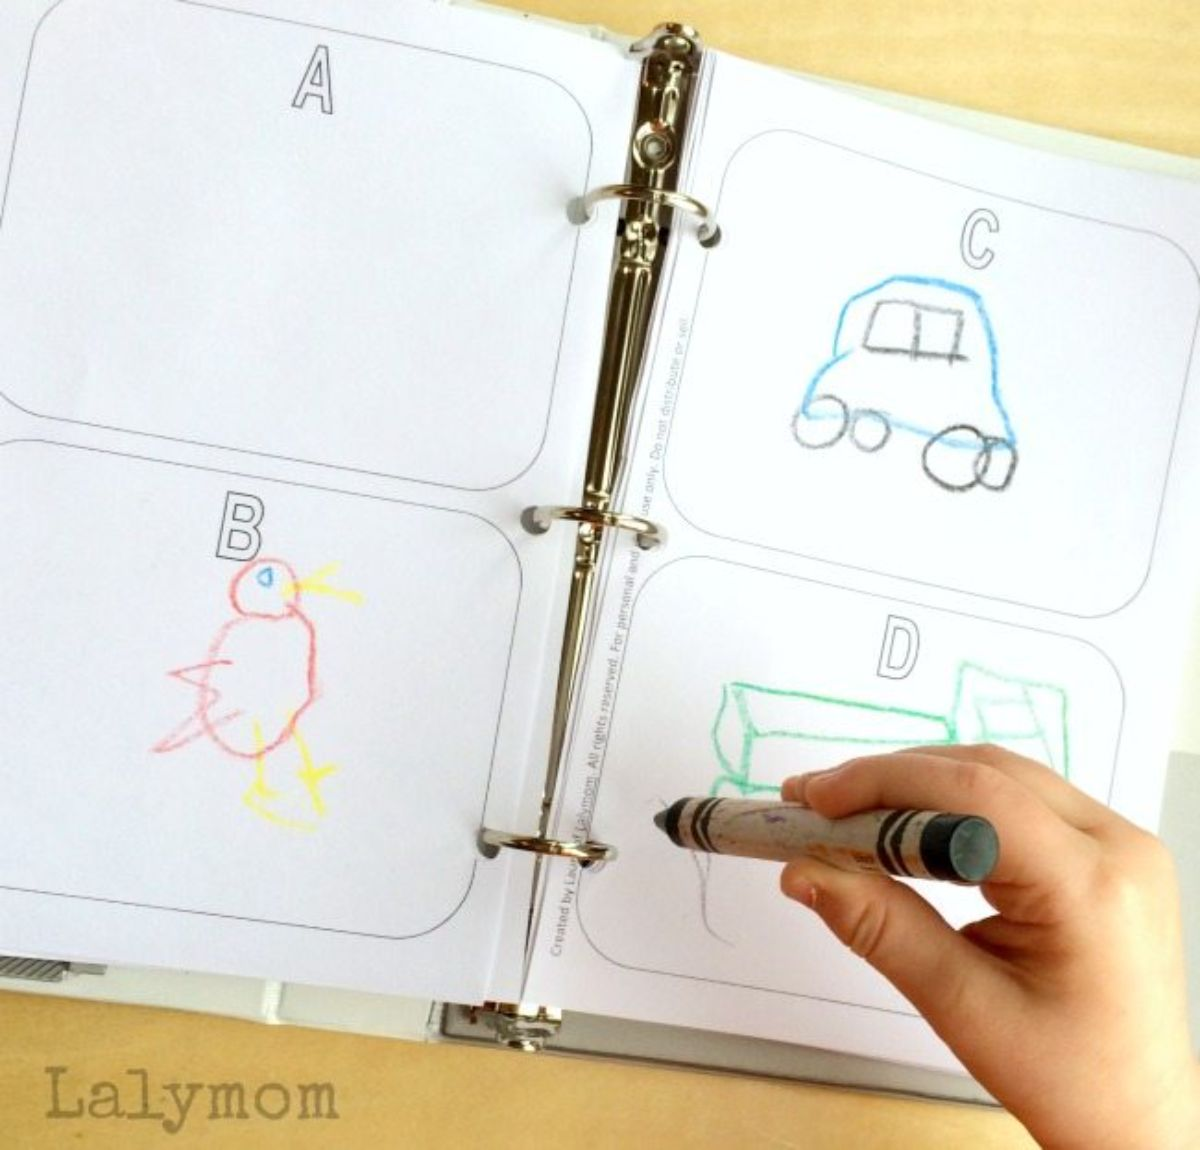 a hand holds a green crayon towards a ring binder with paper in it. Each sheet has 4 squares labelled A-D with pictures drawn on it